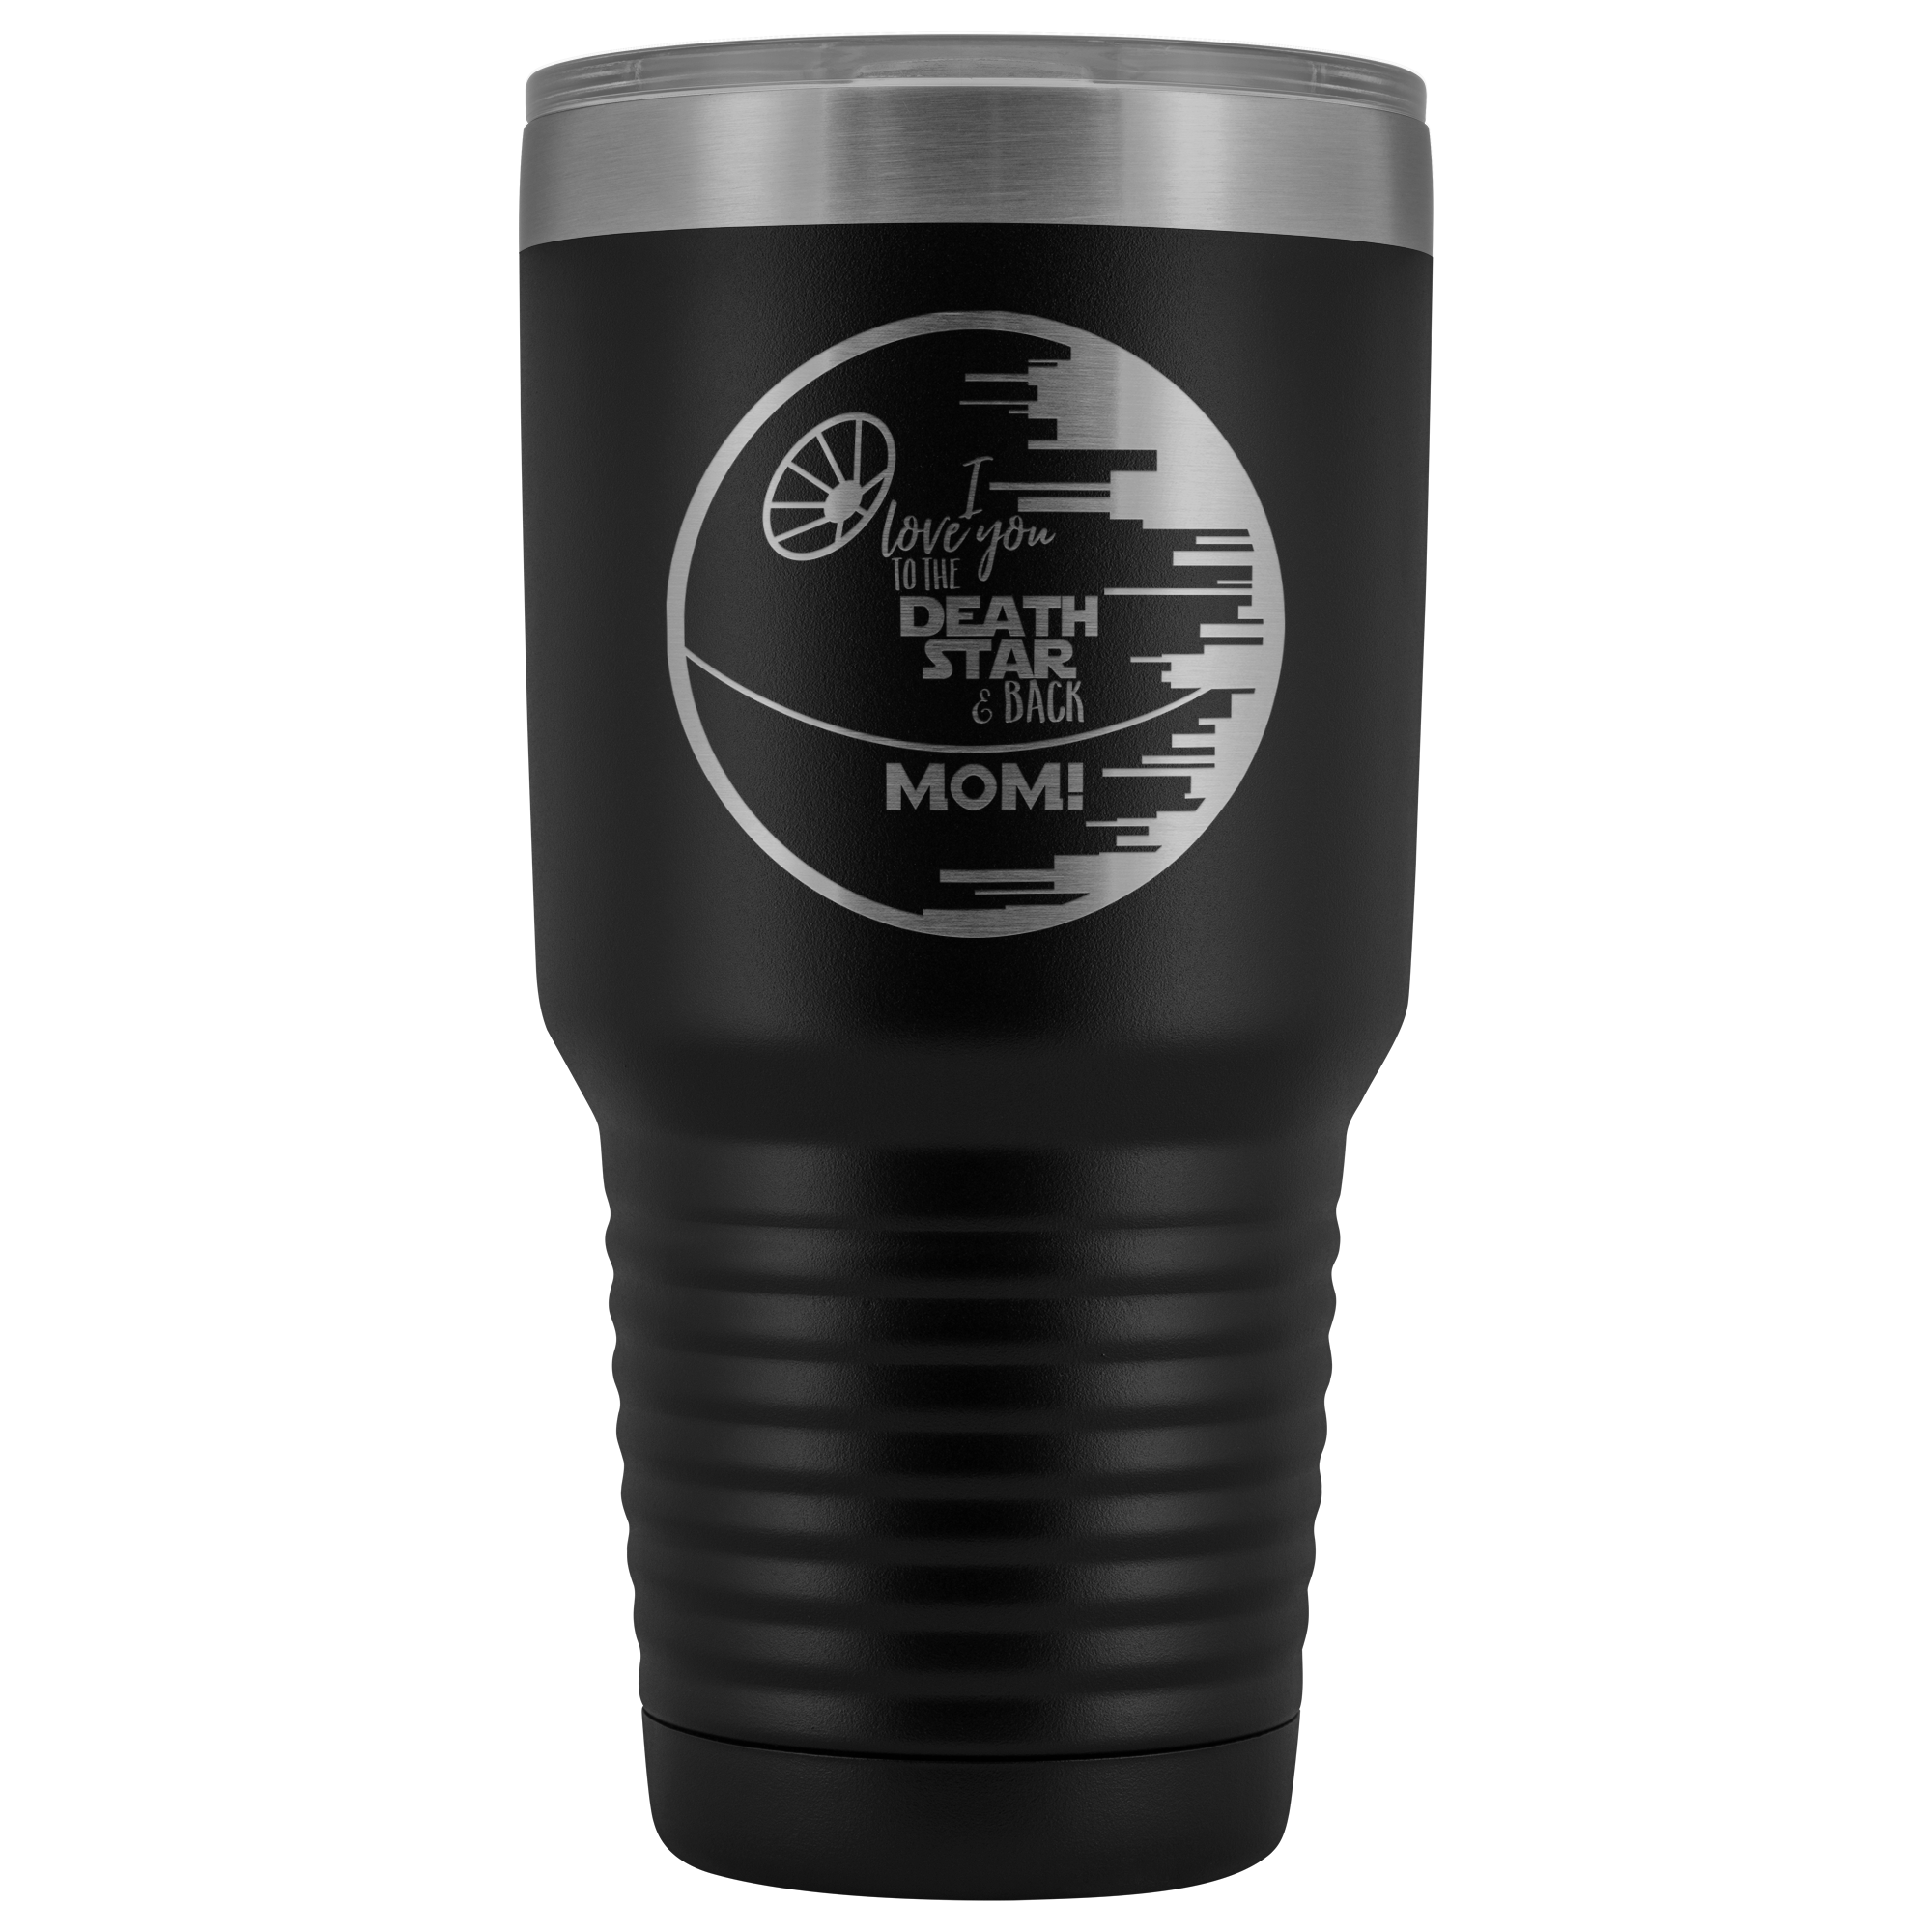 Love You to the Death Star & Back Mom! - 30oz Tumbler Laser-Etched